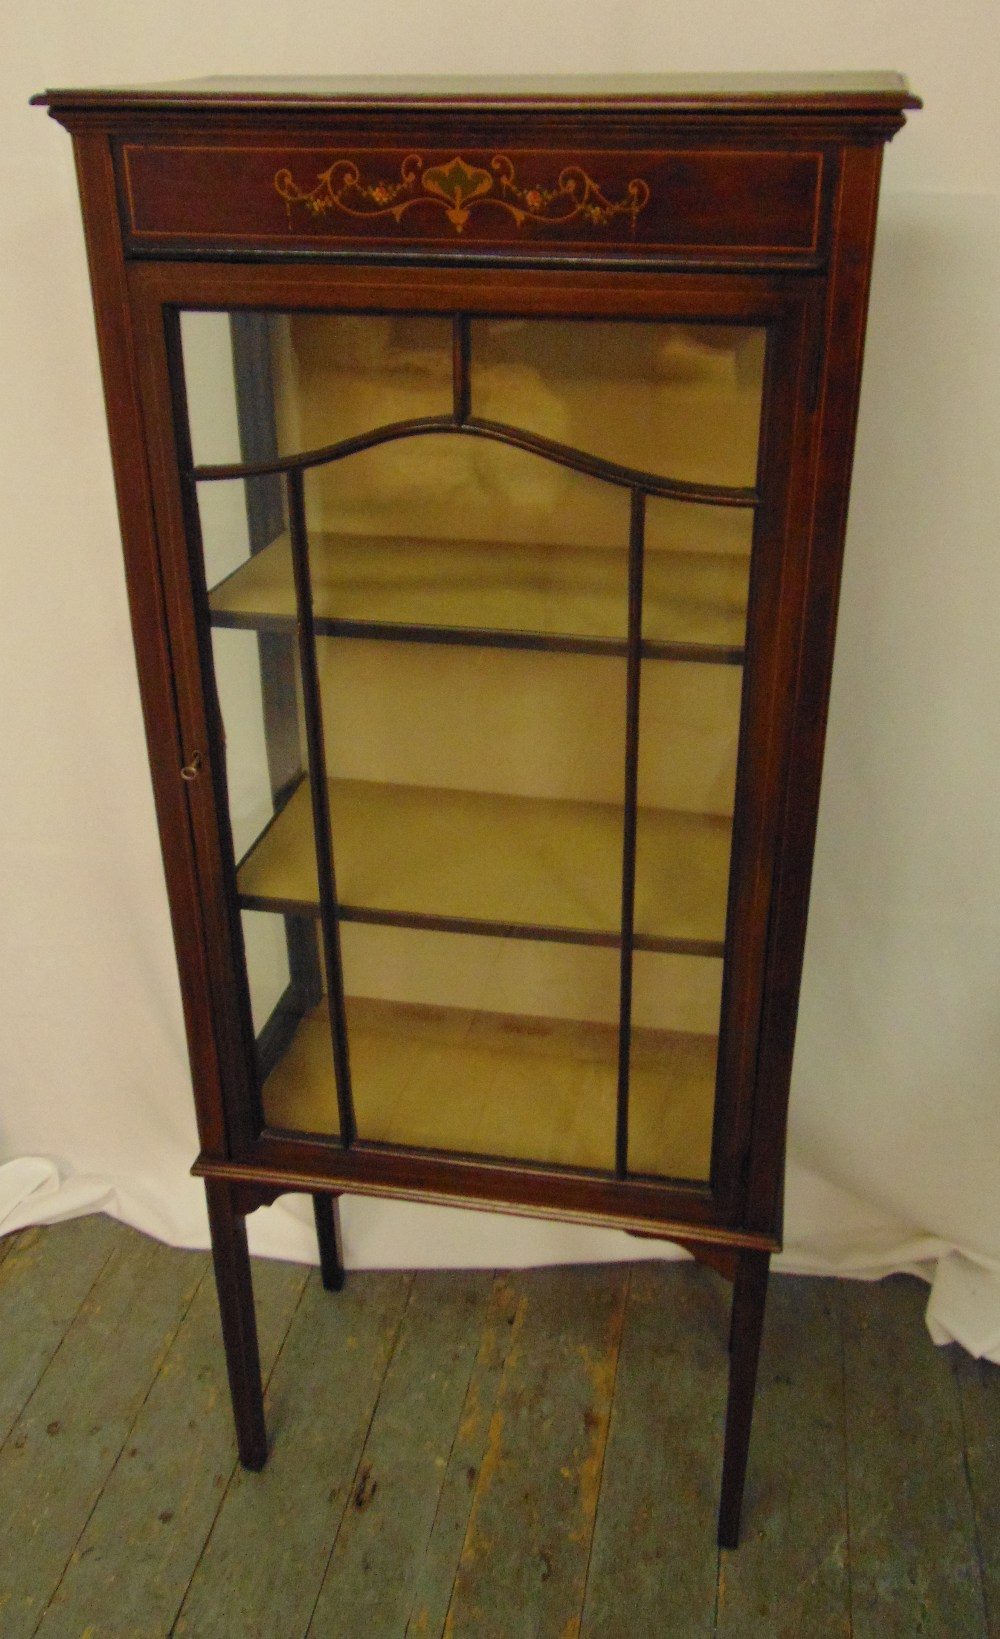 An Edwardian rectangular mahogany and inlaid satinwood glazed display cabinet on four tapering